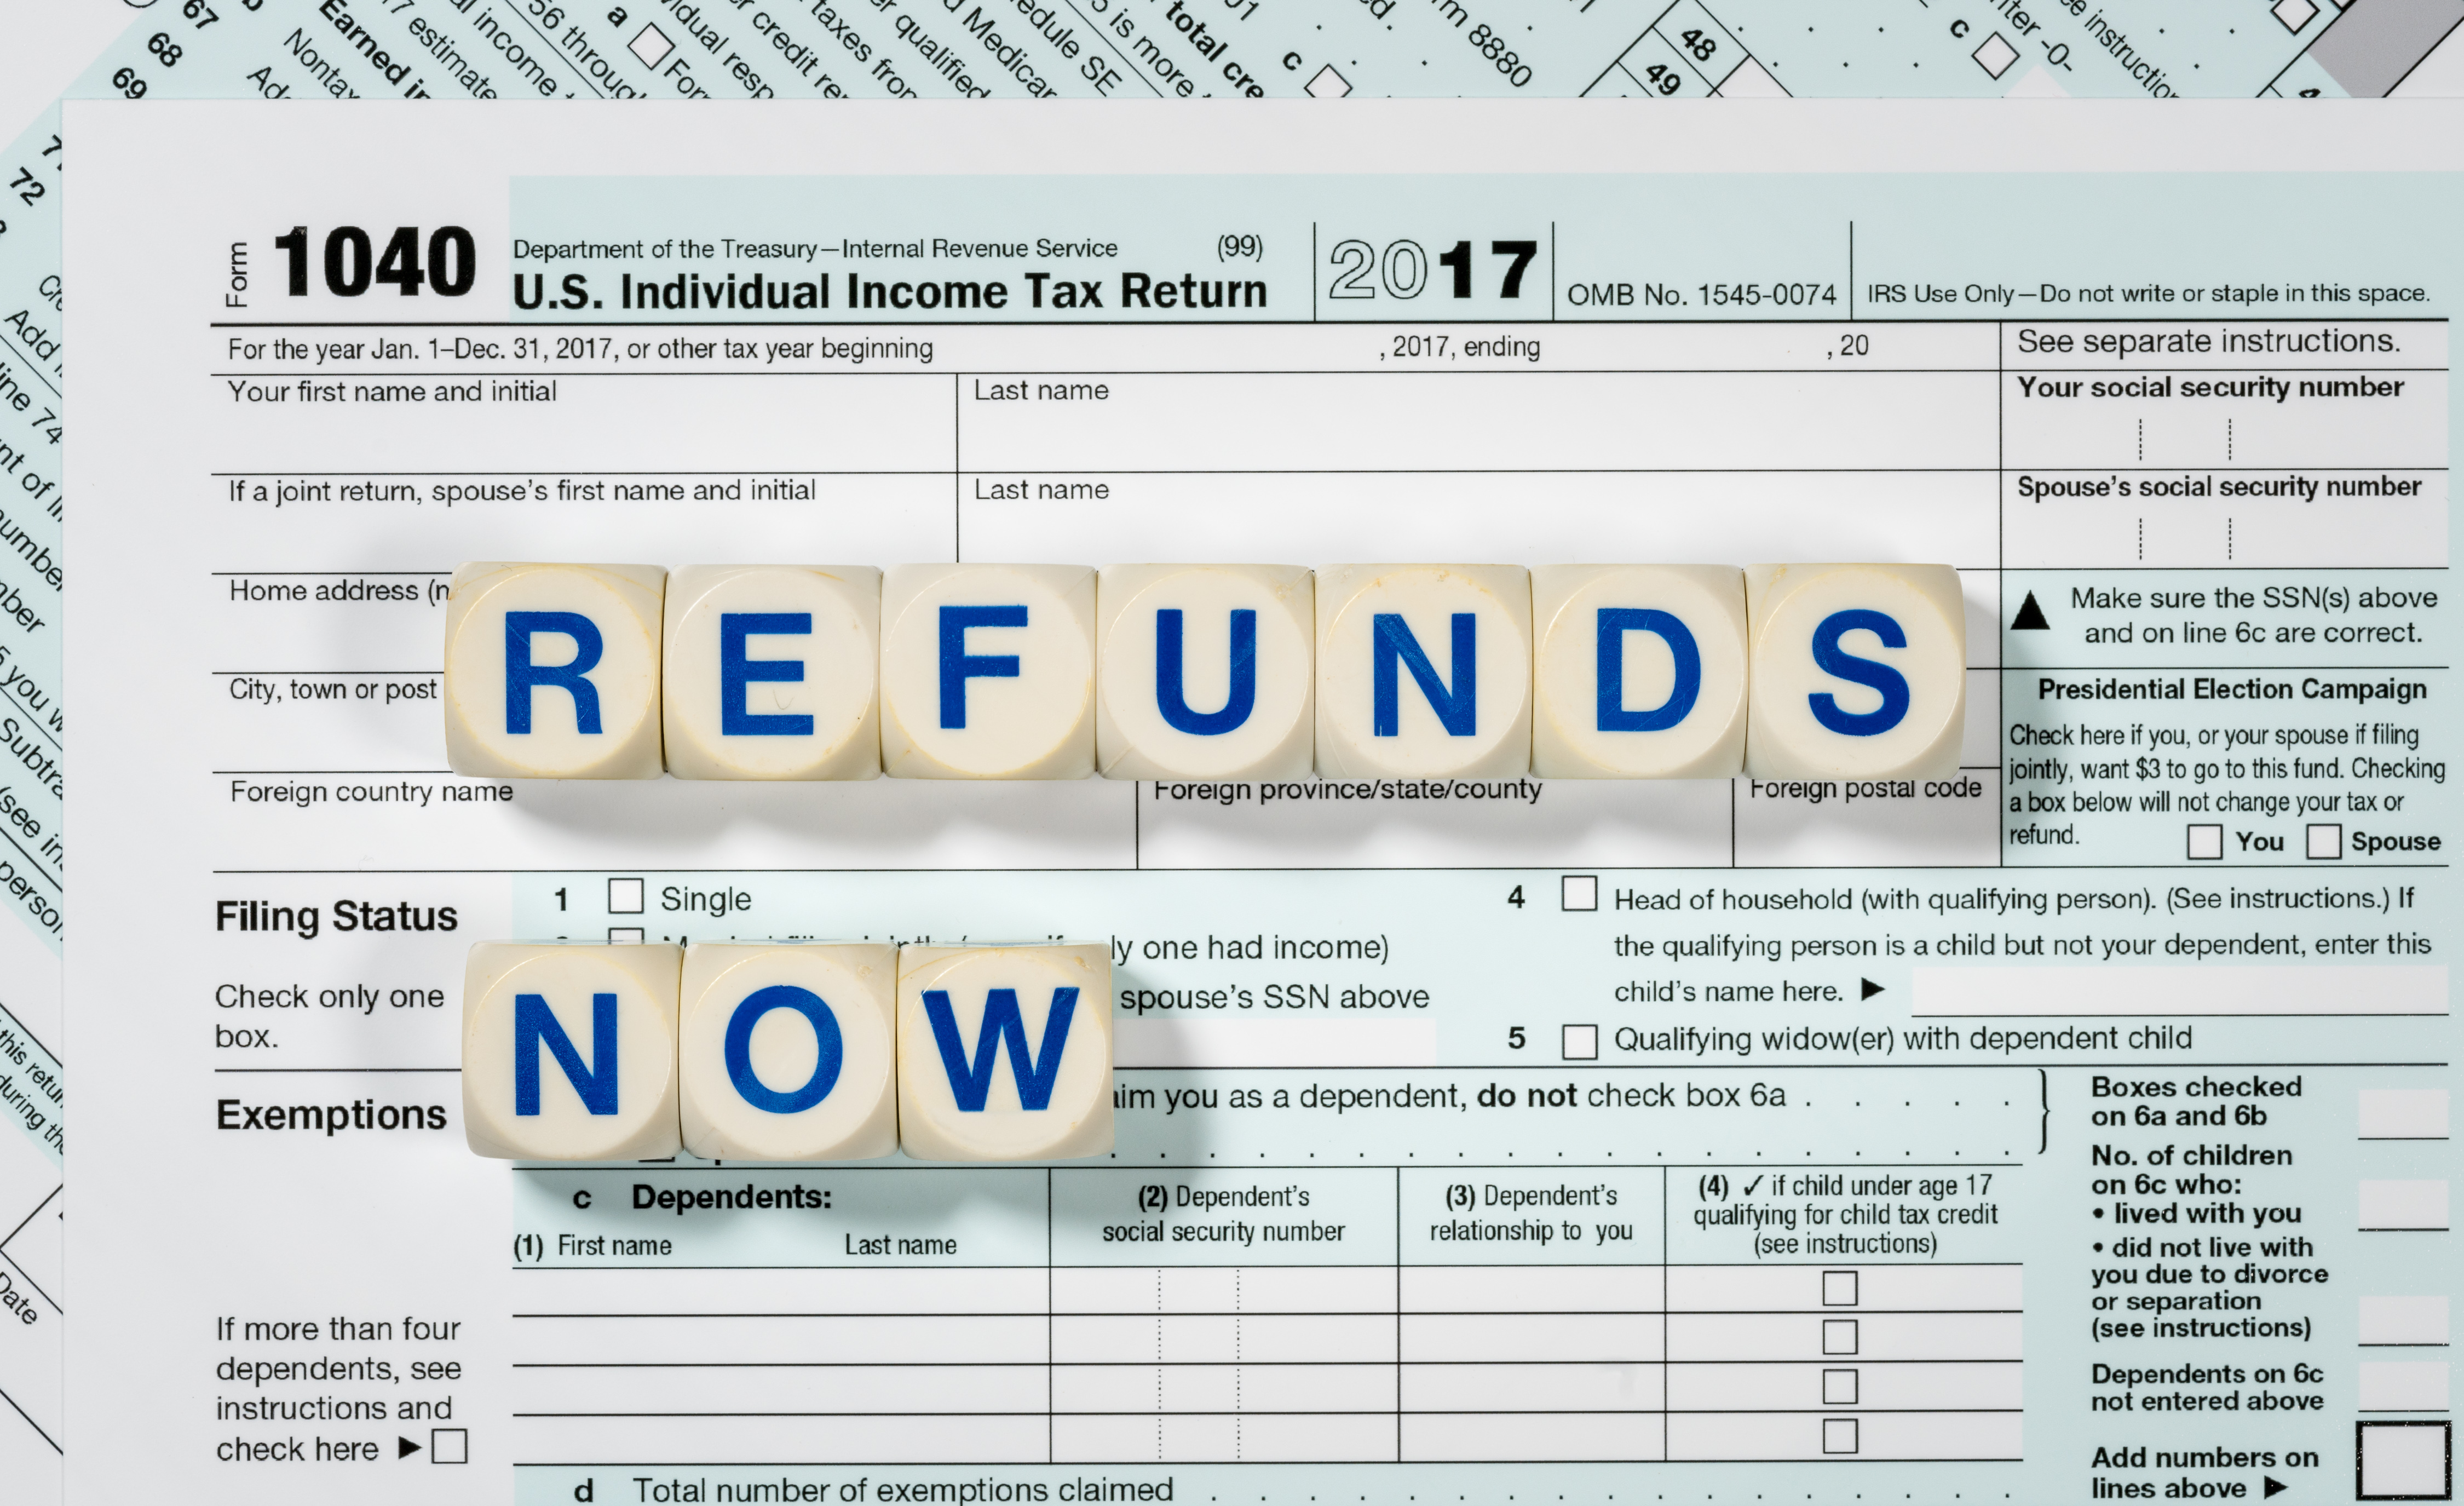 John essigan wealth advisors llc irs says it has refunds worth 11 billion just waiting to be claimed falaconquin